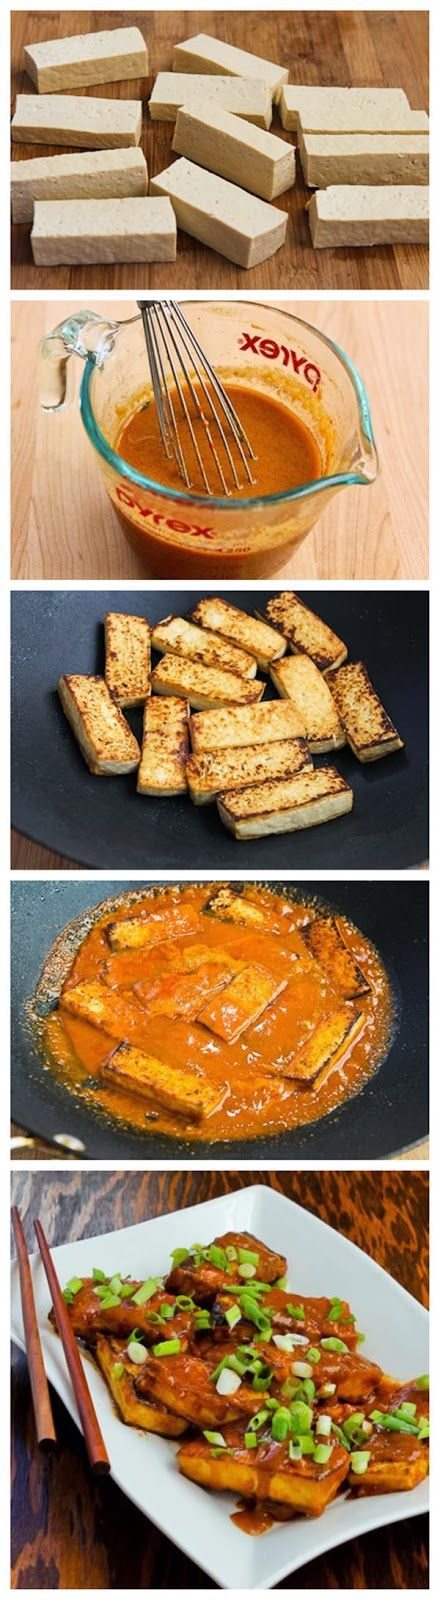 Spicy Vegan Peanut Butter Tofu with Sriracha   I wasn't crazy about the sauce. I think maybe the Siracha made it too vinegary for my taste. So I added 2-3 tablespoons of brown sugar and 1 1/2 tablespoons EXTRA peanut butter and it tastes so much better to me. More like a peanut satay sauce. Next time I would try crushed red pepper for spice instead of Siracha.